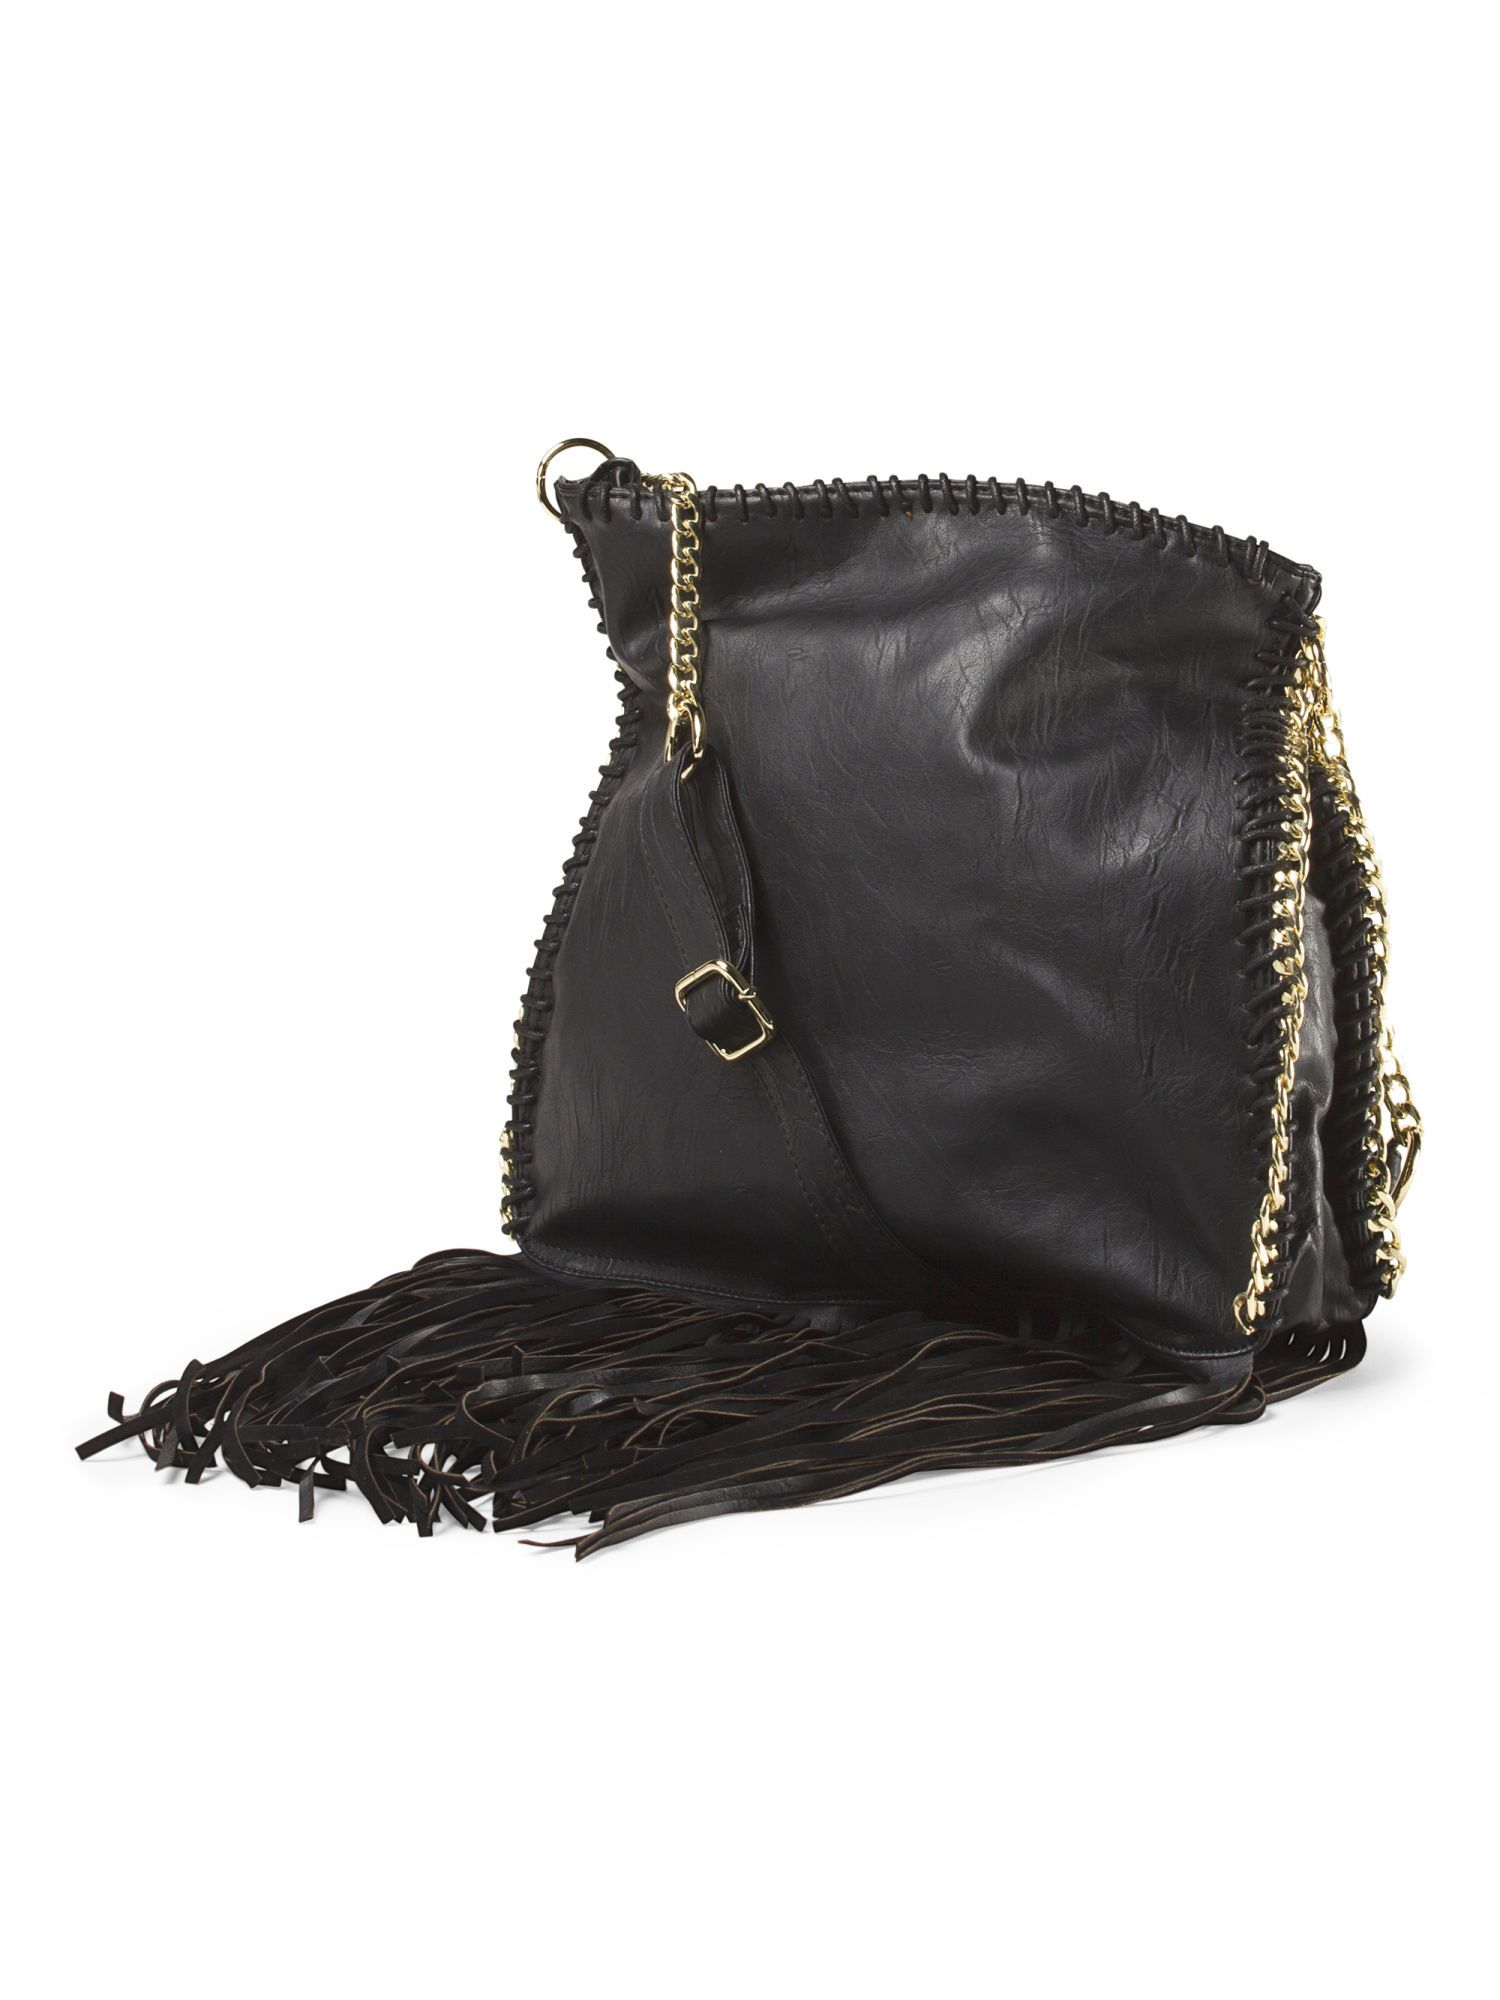 Stay on trend with this fringe cross body bag with edgy chain details.